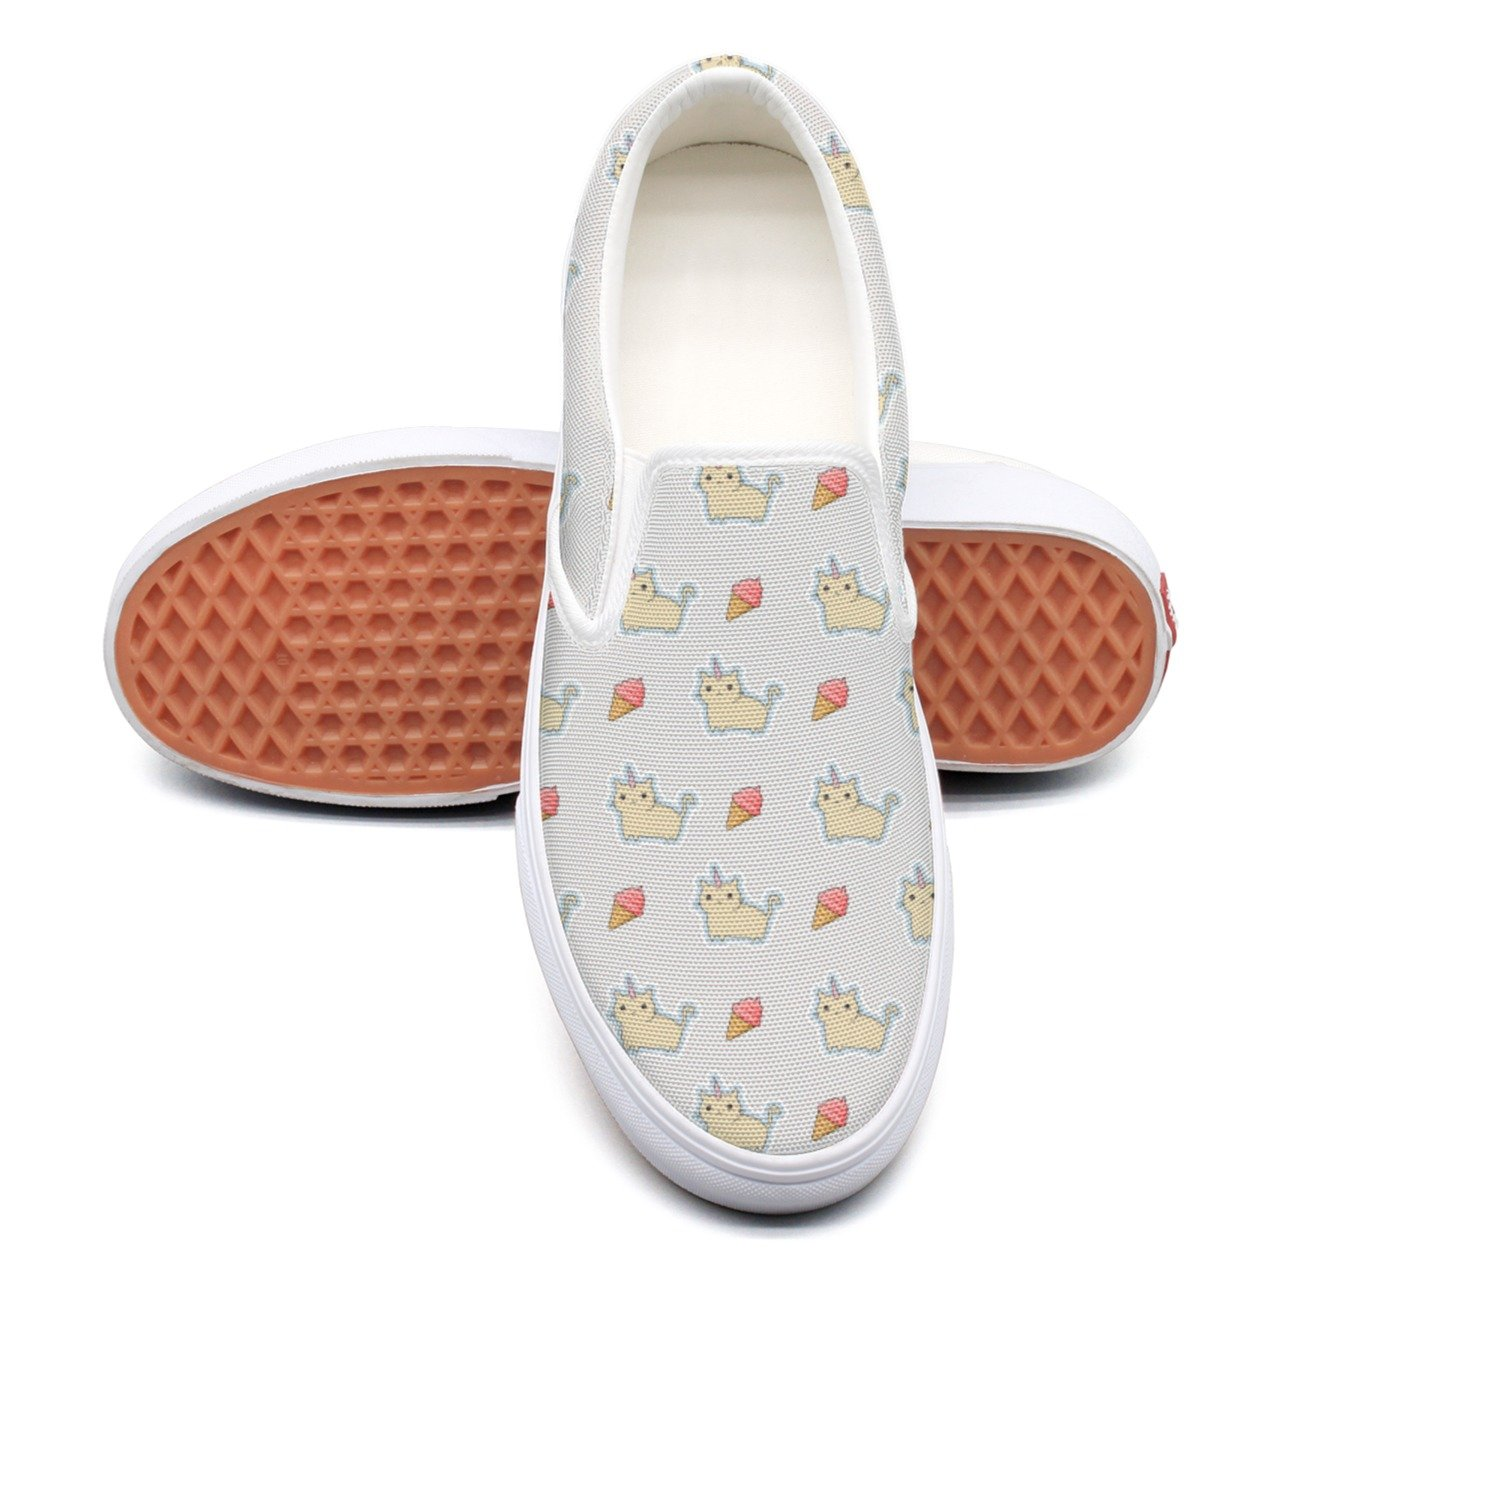 PDAQS Men Kawaii Unicorn Cat Ice Cream Loafers Canvas Shoes Low Top